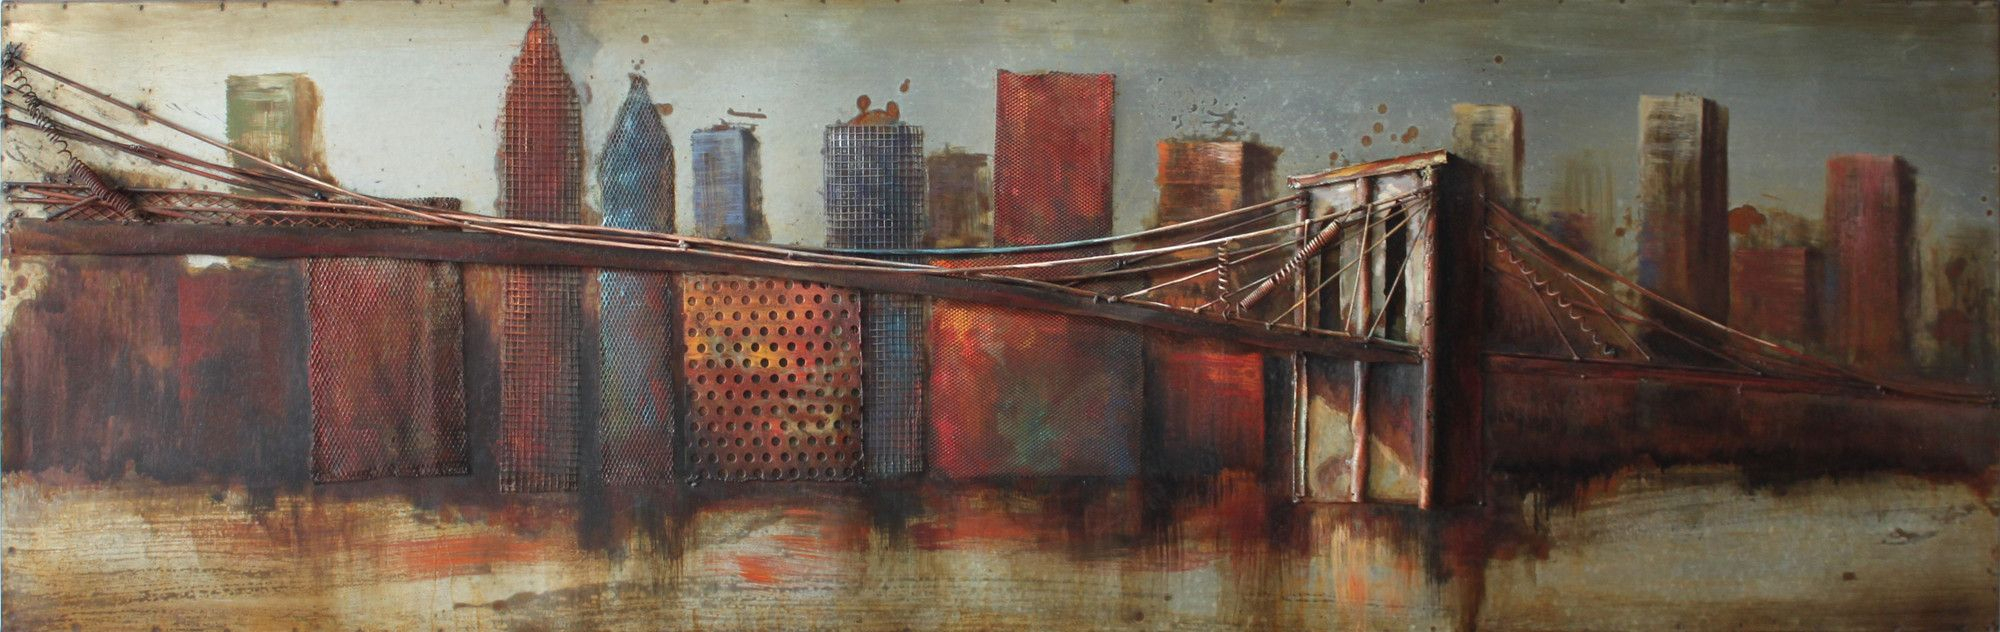 """bridge To The City"" Mixed Media Iron Hand Painted Dimensional Wall Decor Regarding 2020 Bridge To The City 1 Mixed Media Iron Hand Painted Dimensional Wall (View 6 of 20)"